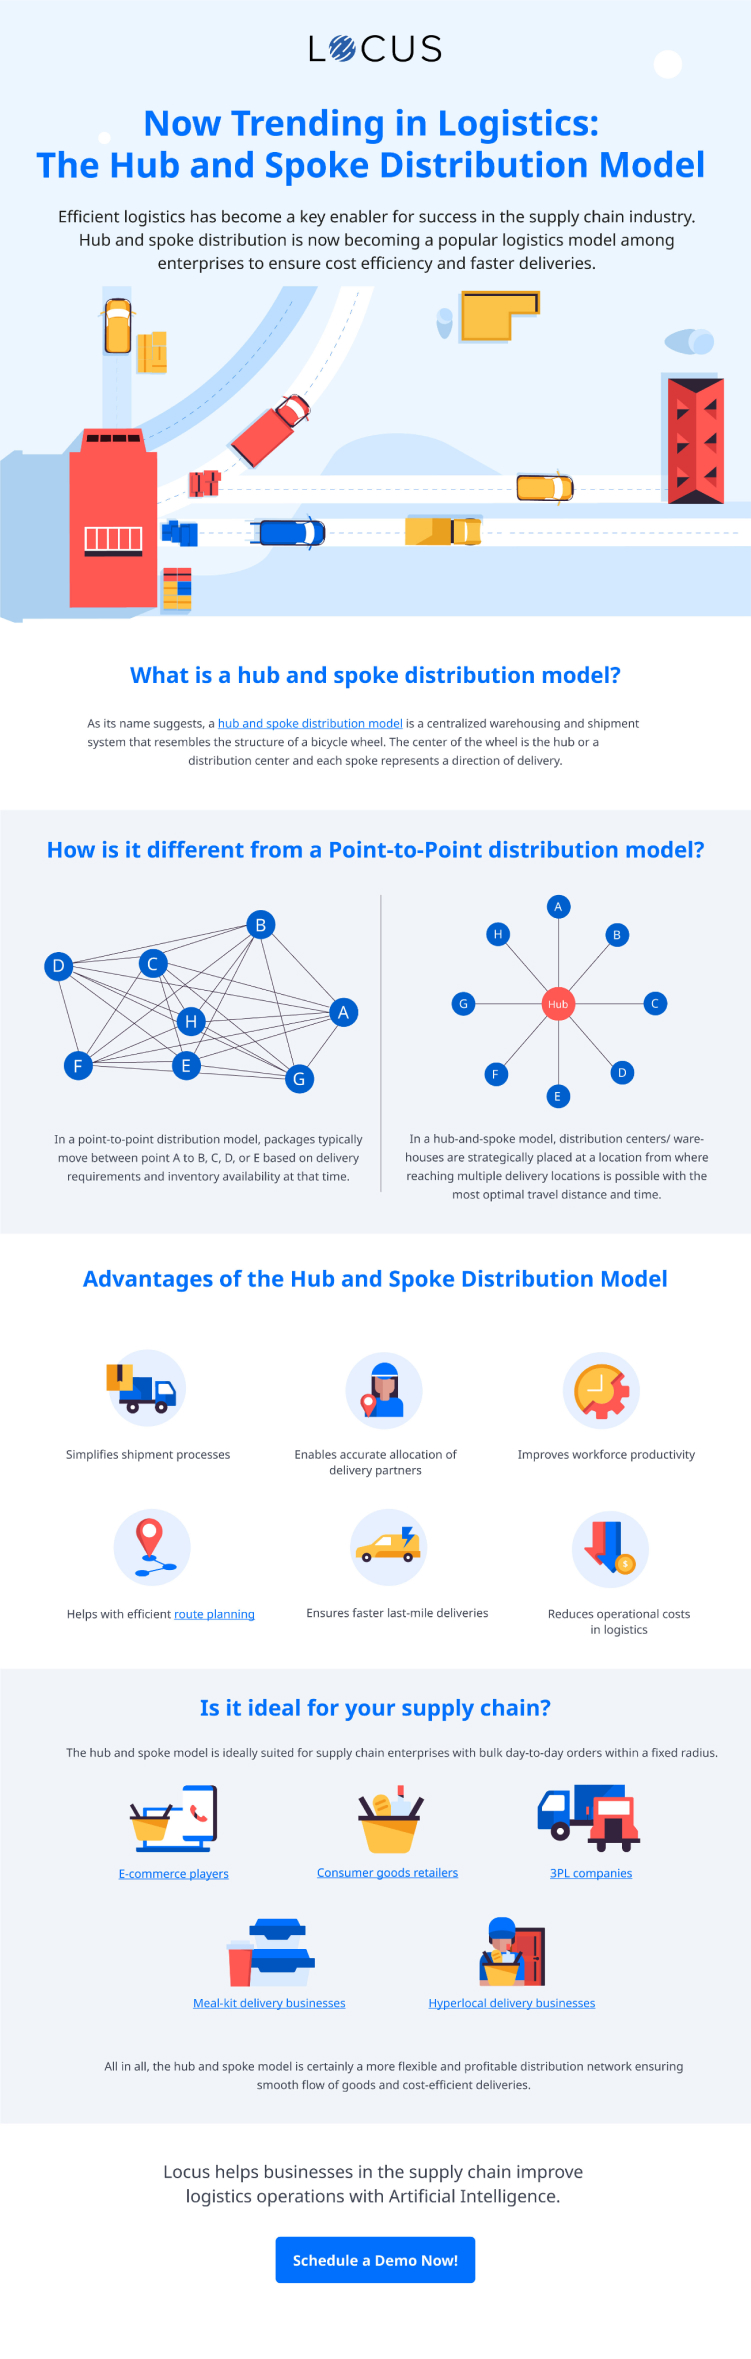 Now Trending in Logistics: The Hub and Spoke Distribution Model